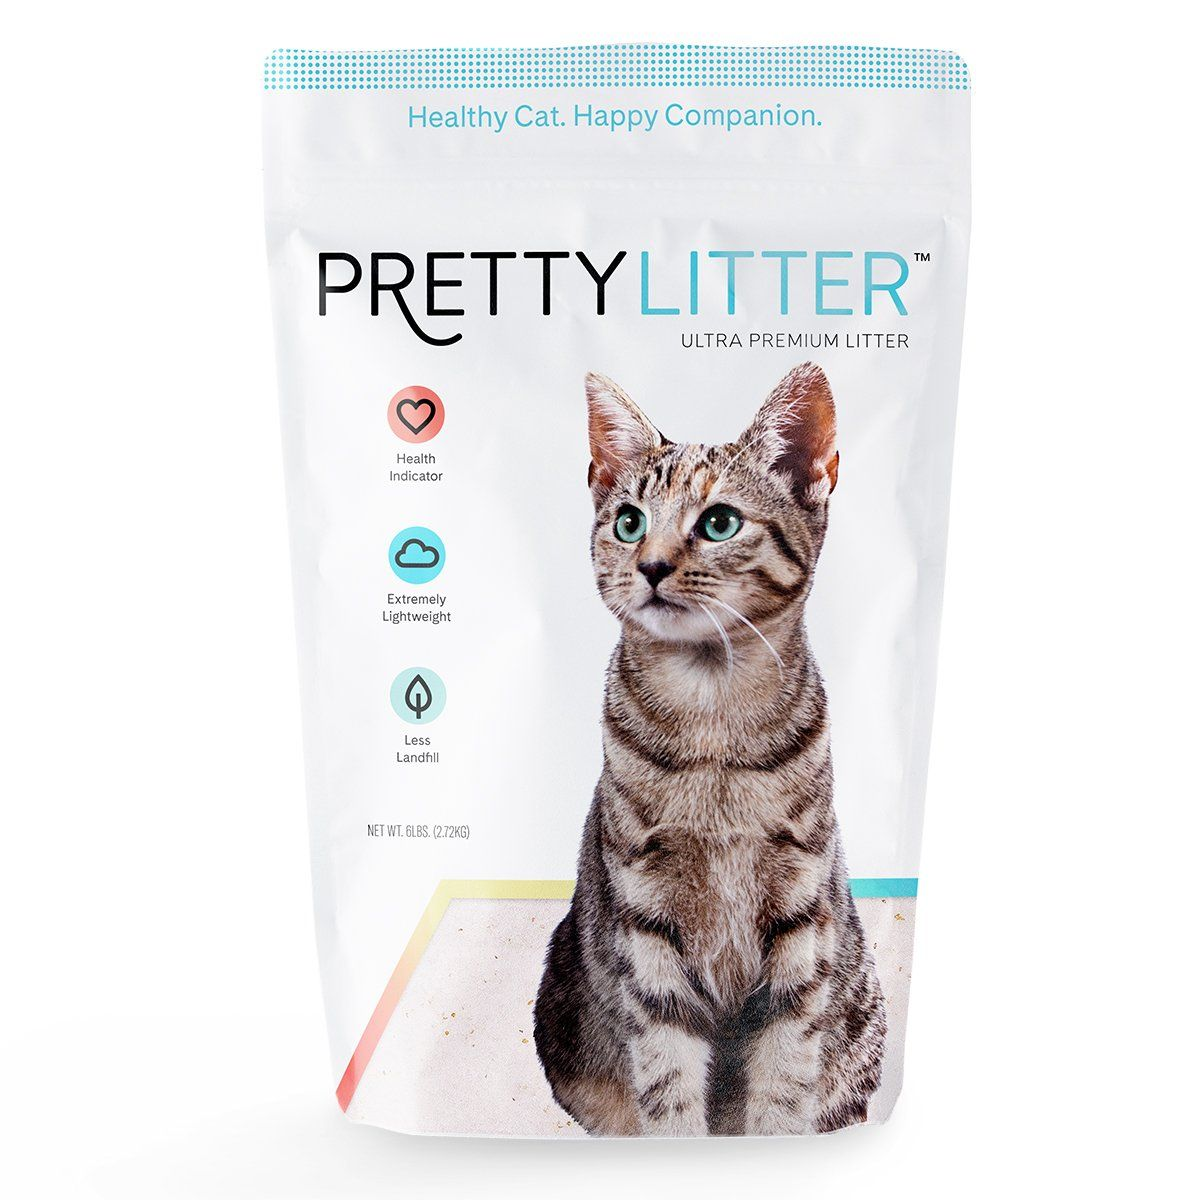 pretty litter product image